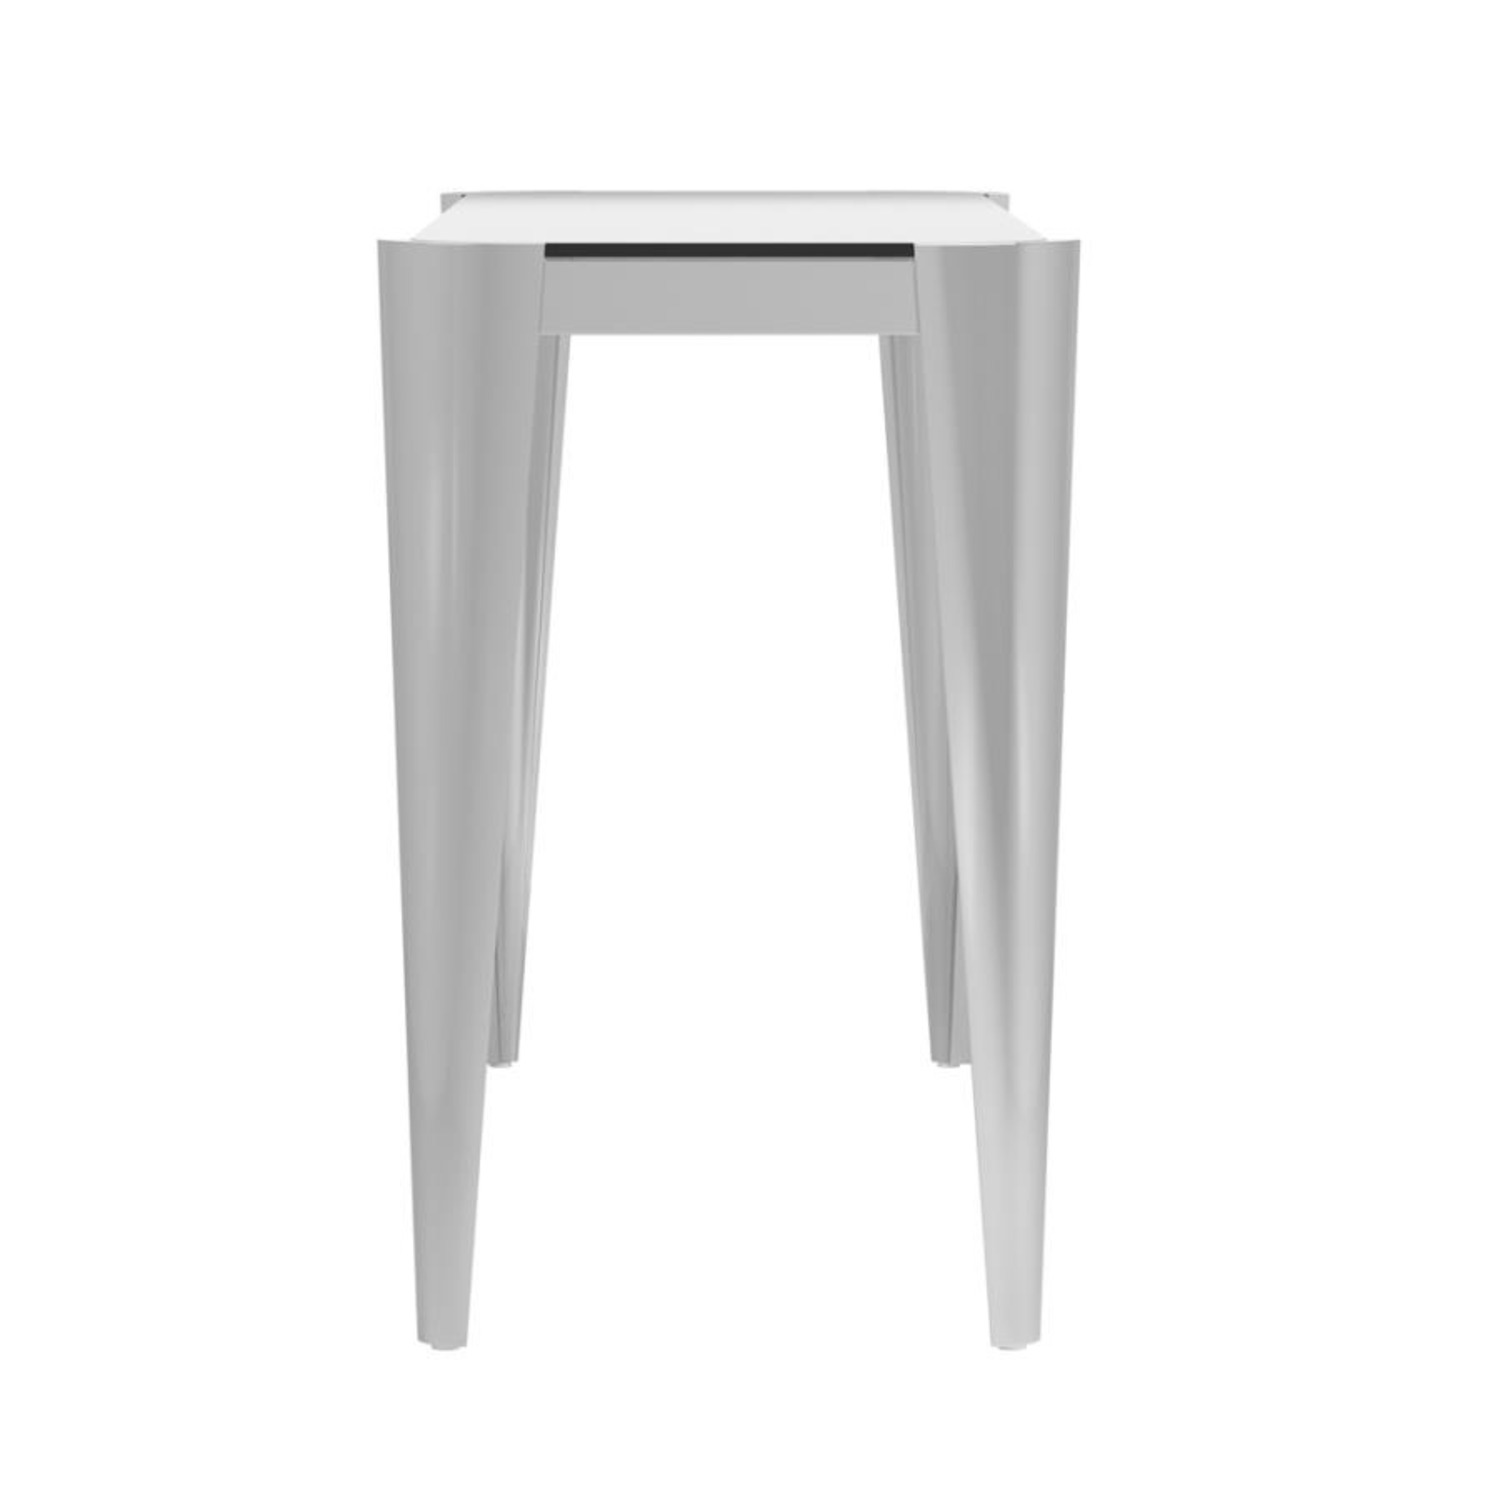 Sofa Table In Silver W/ Grey Tempered Glass Top - image-3